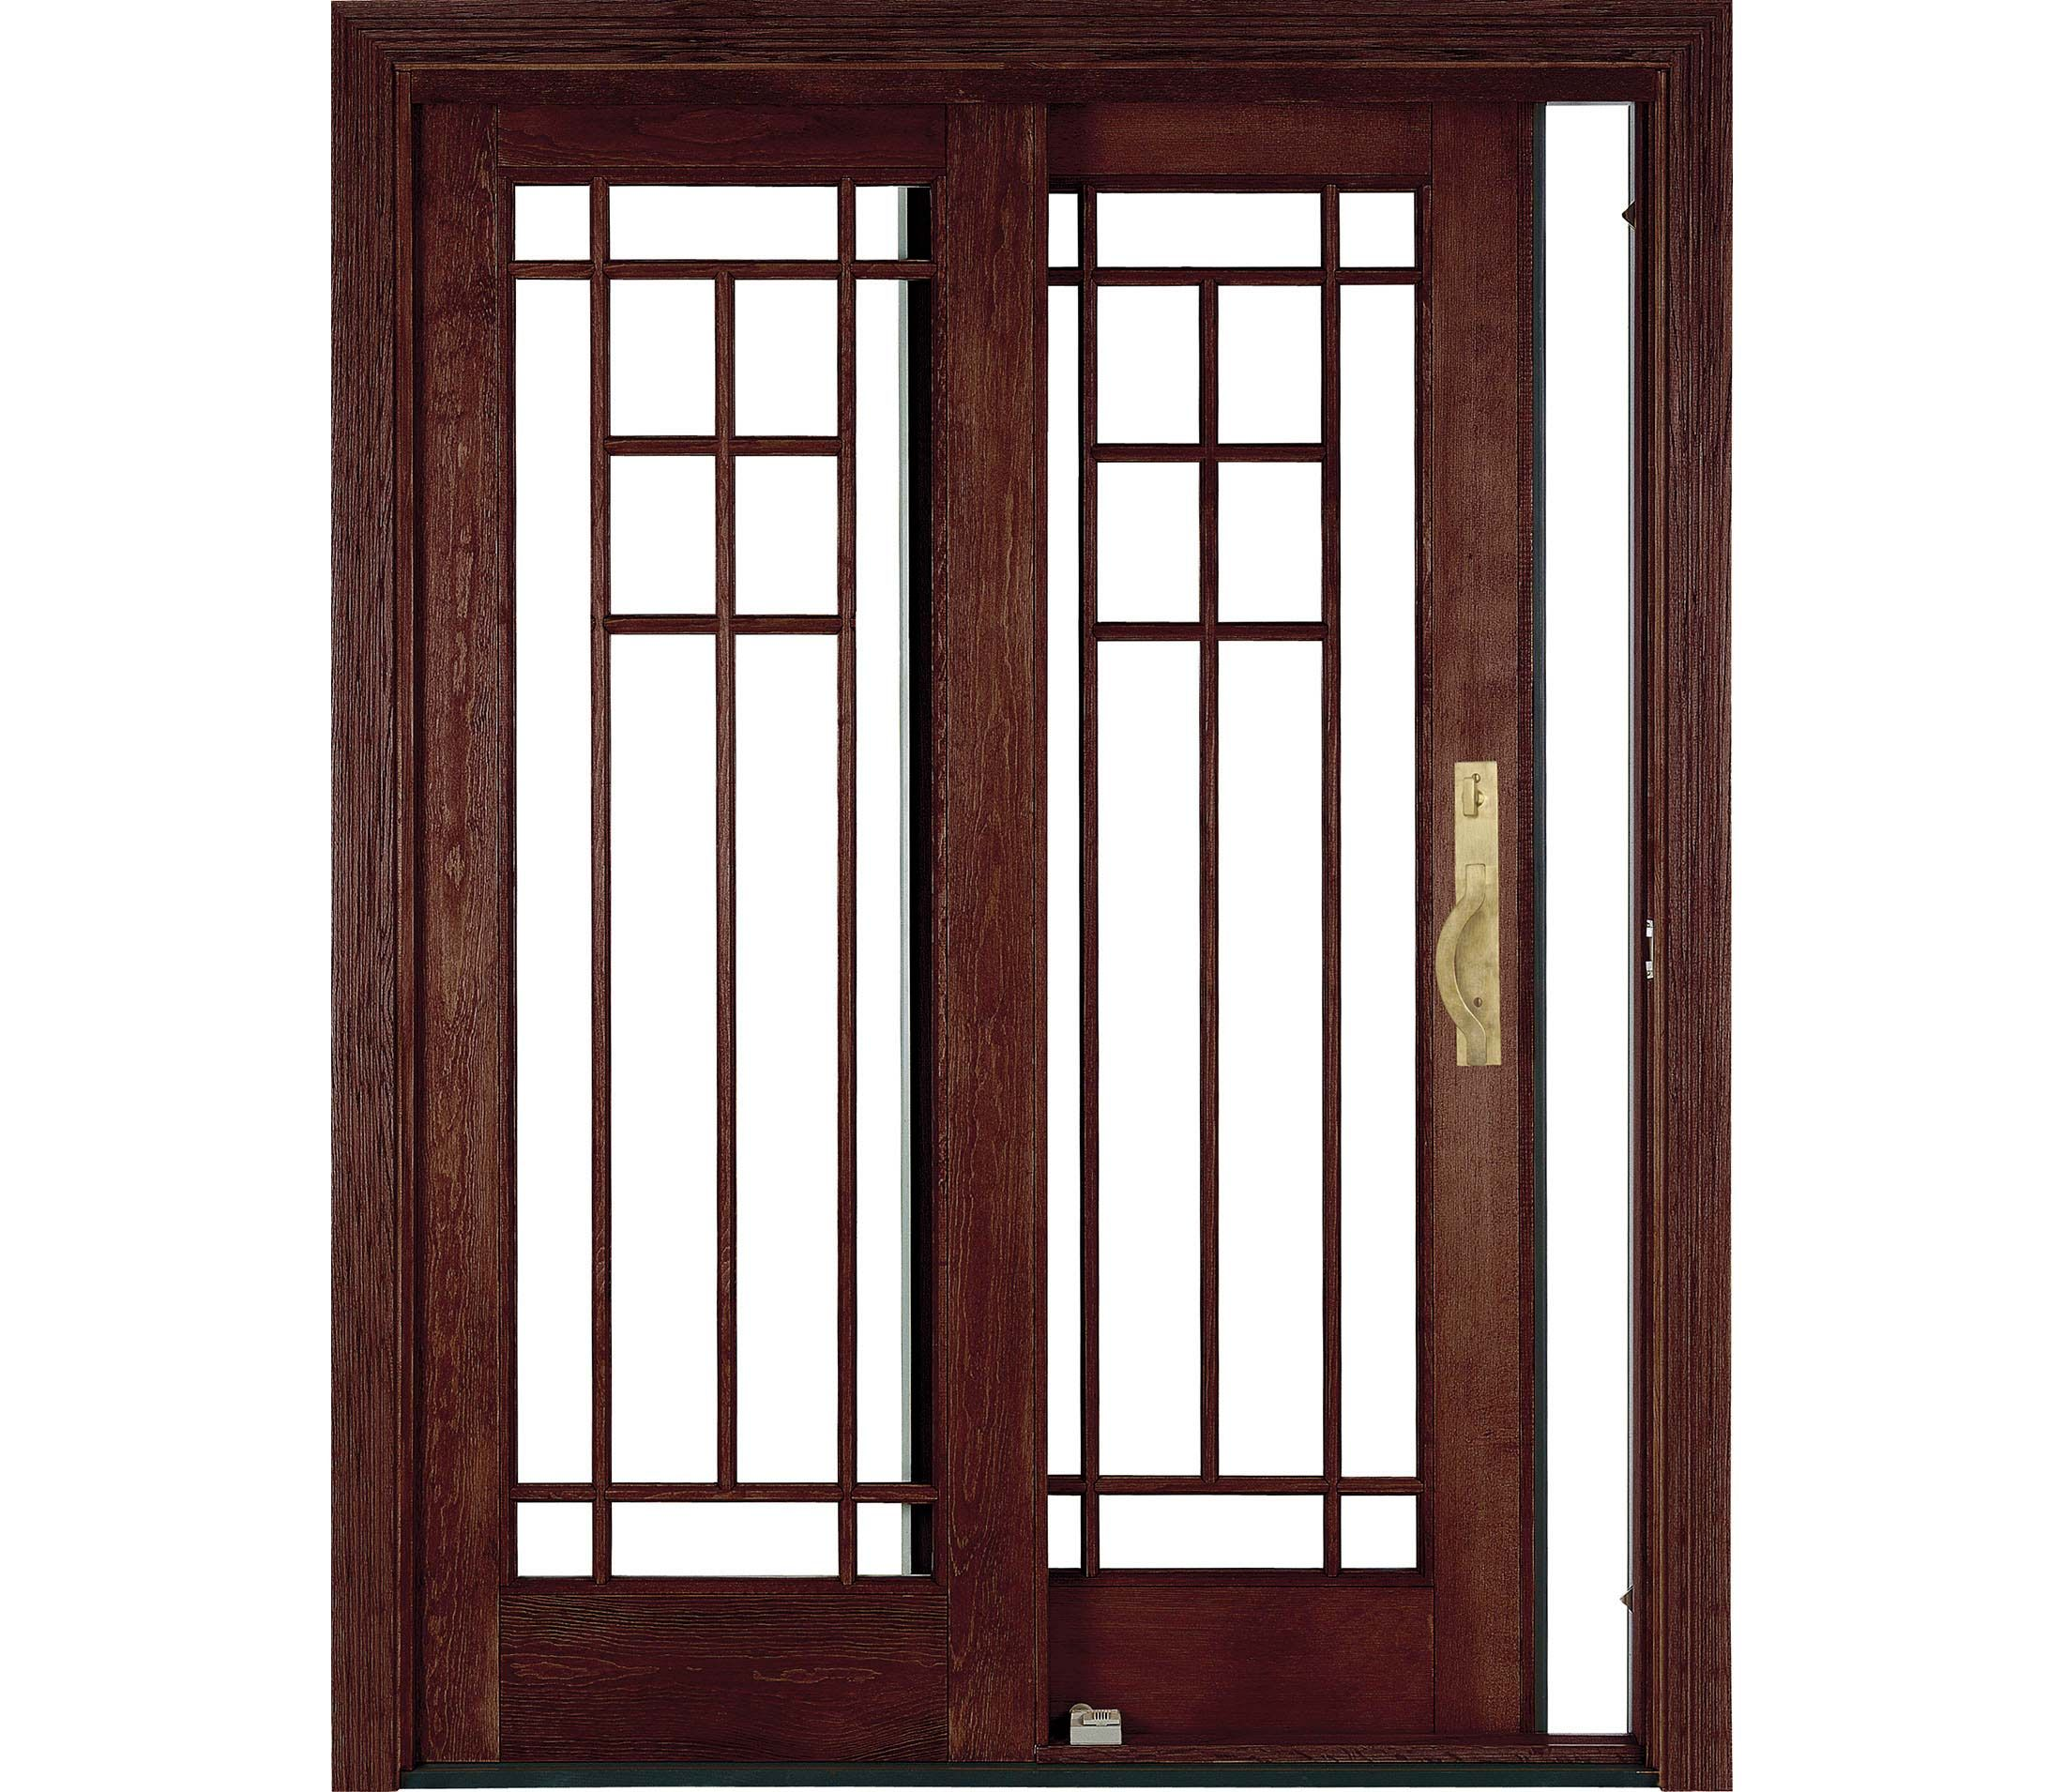 Architect Series Sliding Patio Door Craftsman Dream Home Pint